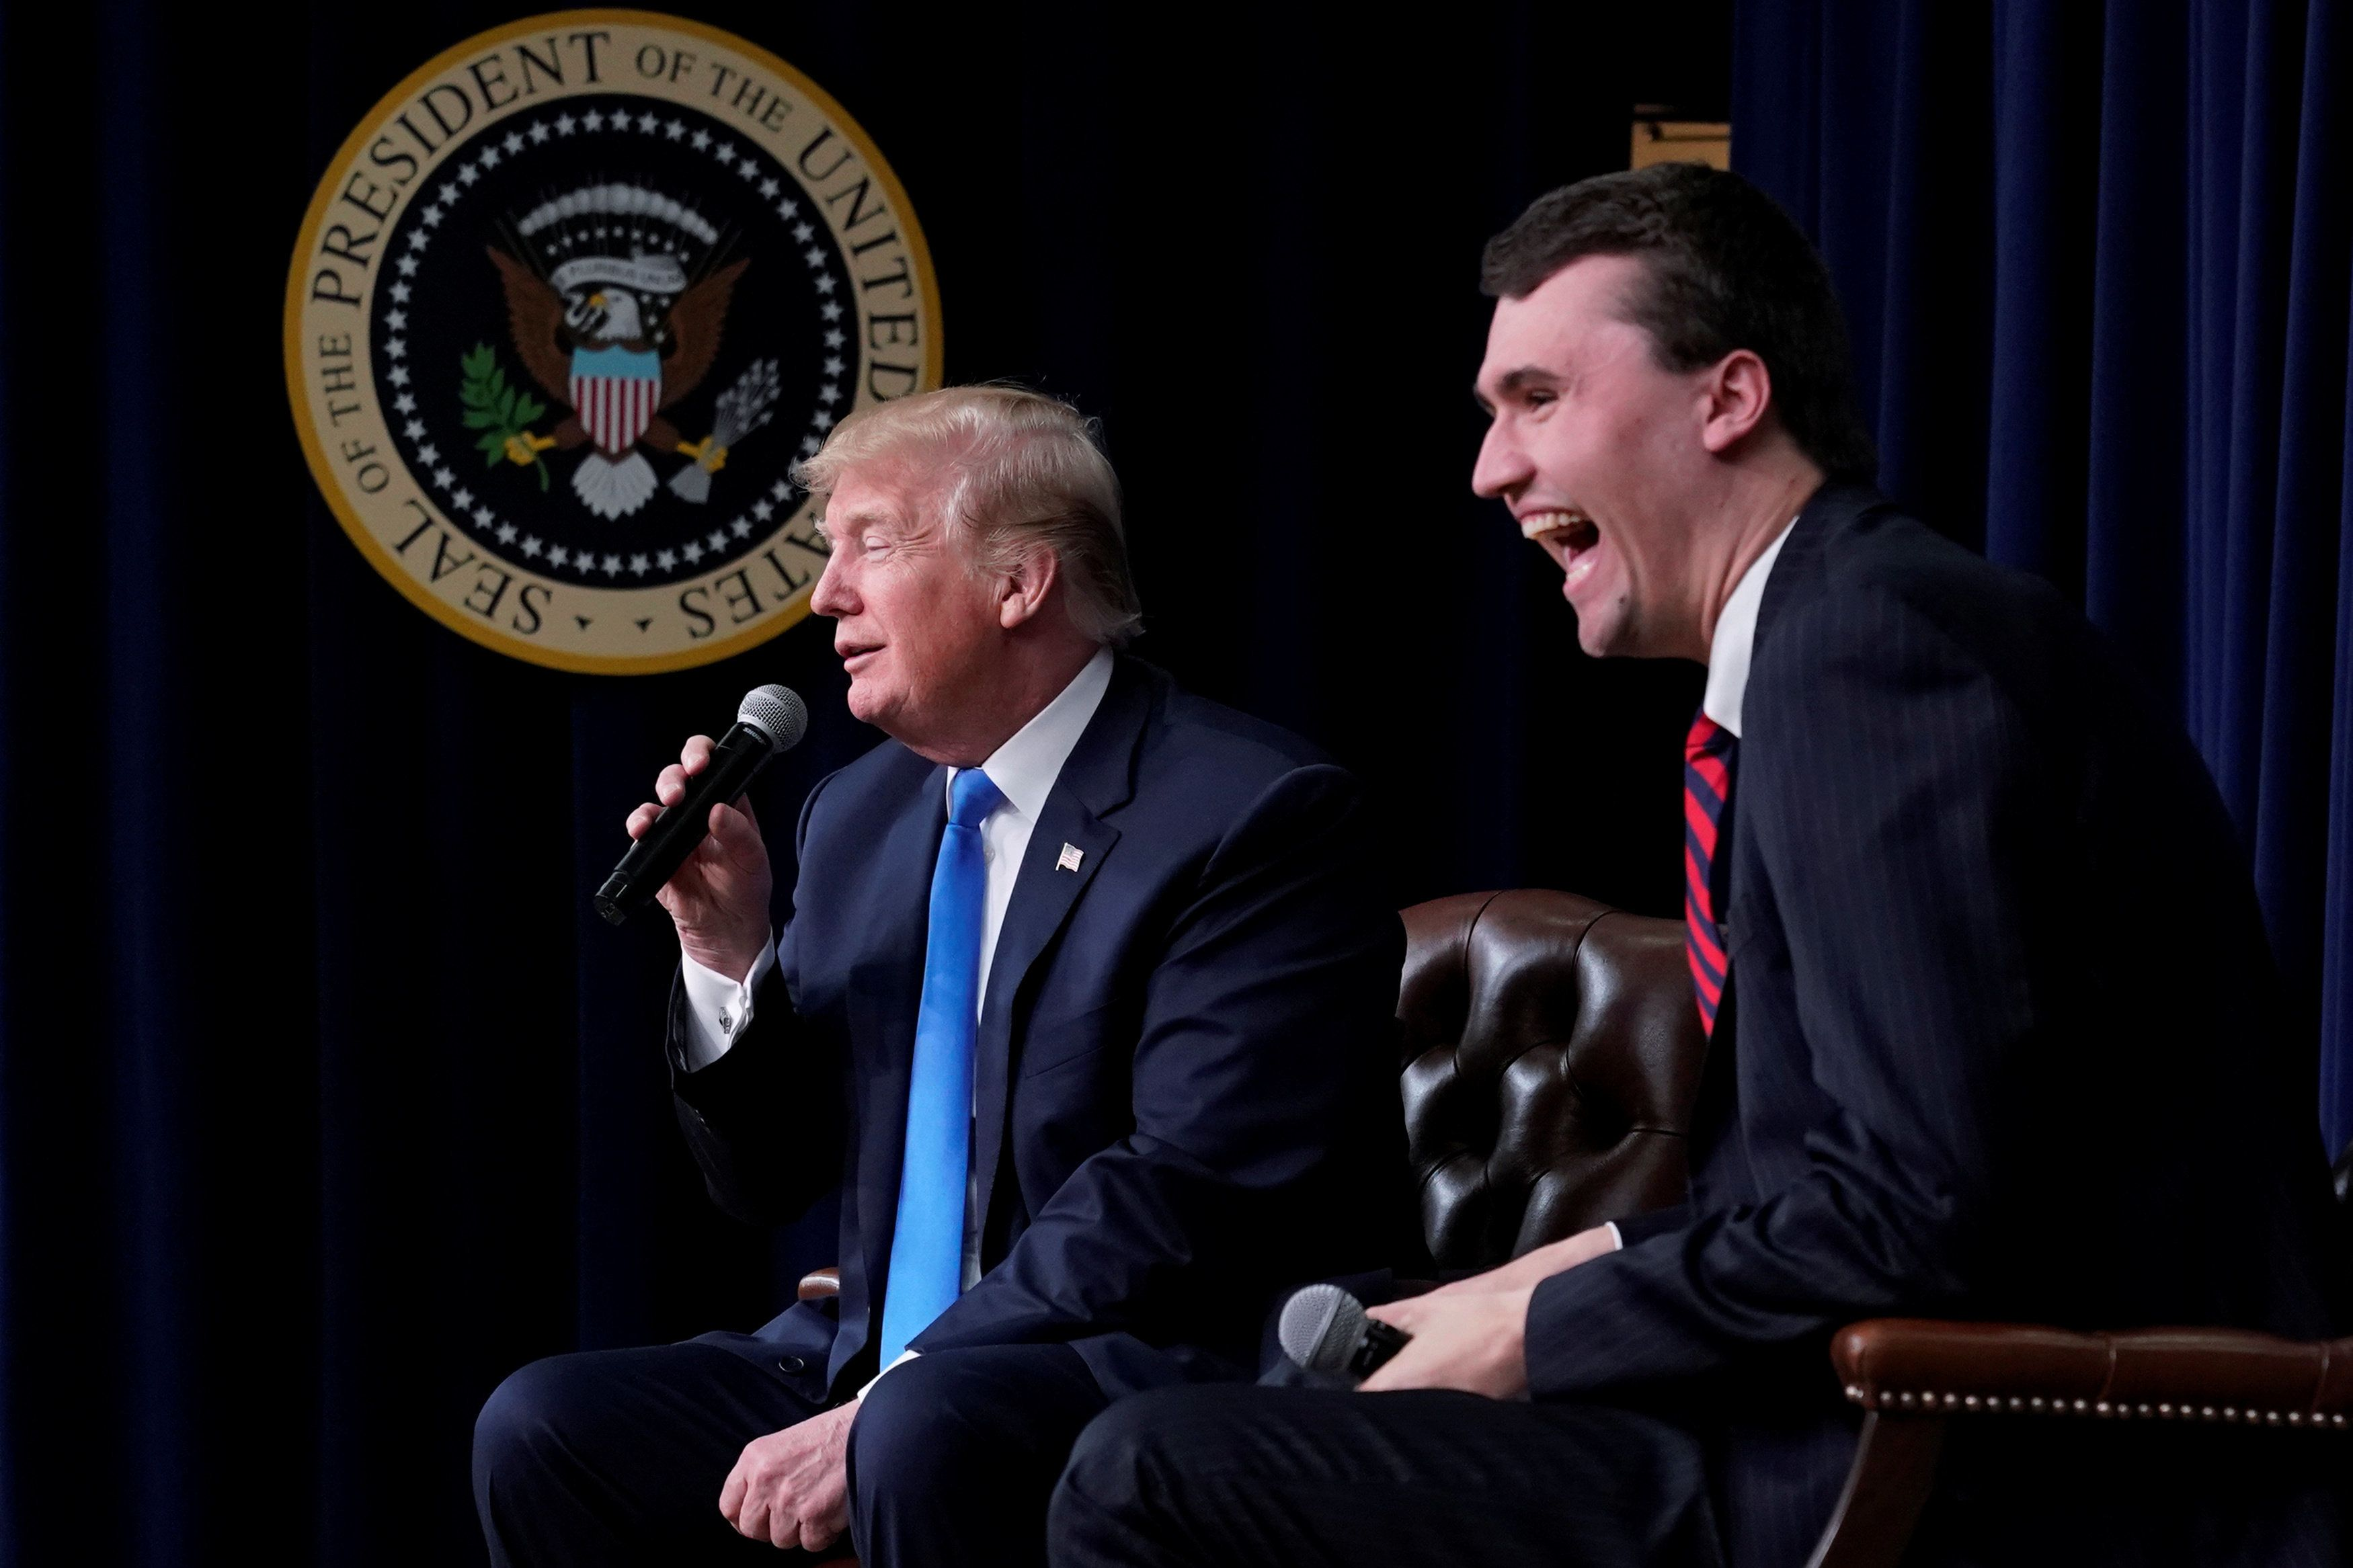 Turning Point USA founder Charlie Kirk laughs after President Donald Trump says at a White House youth fo